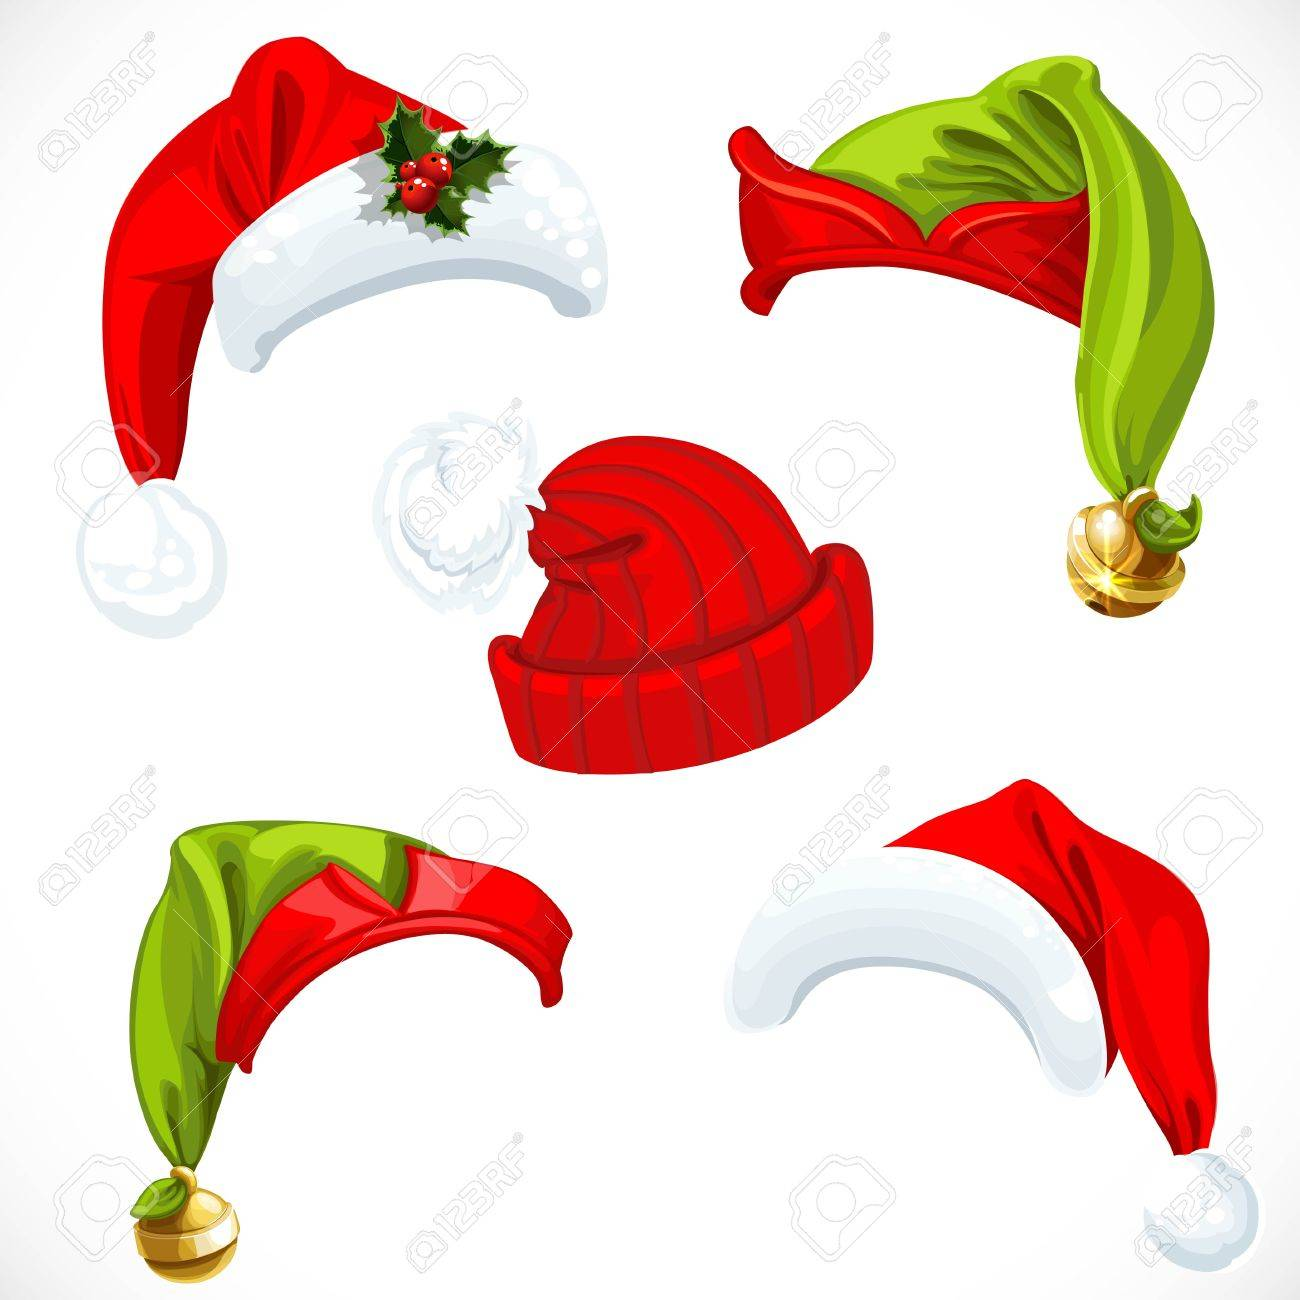 New year Santa and Elf hats isolated on a white background - 50312734